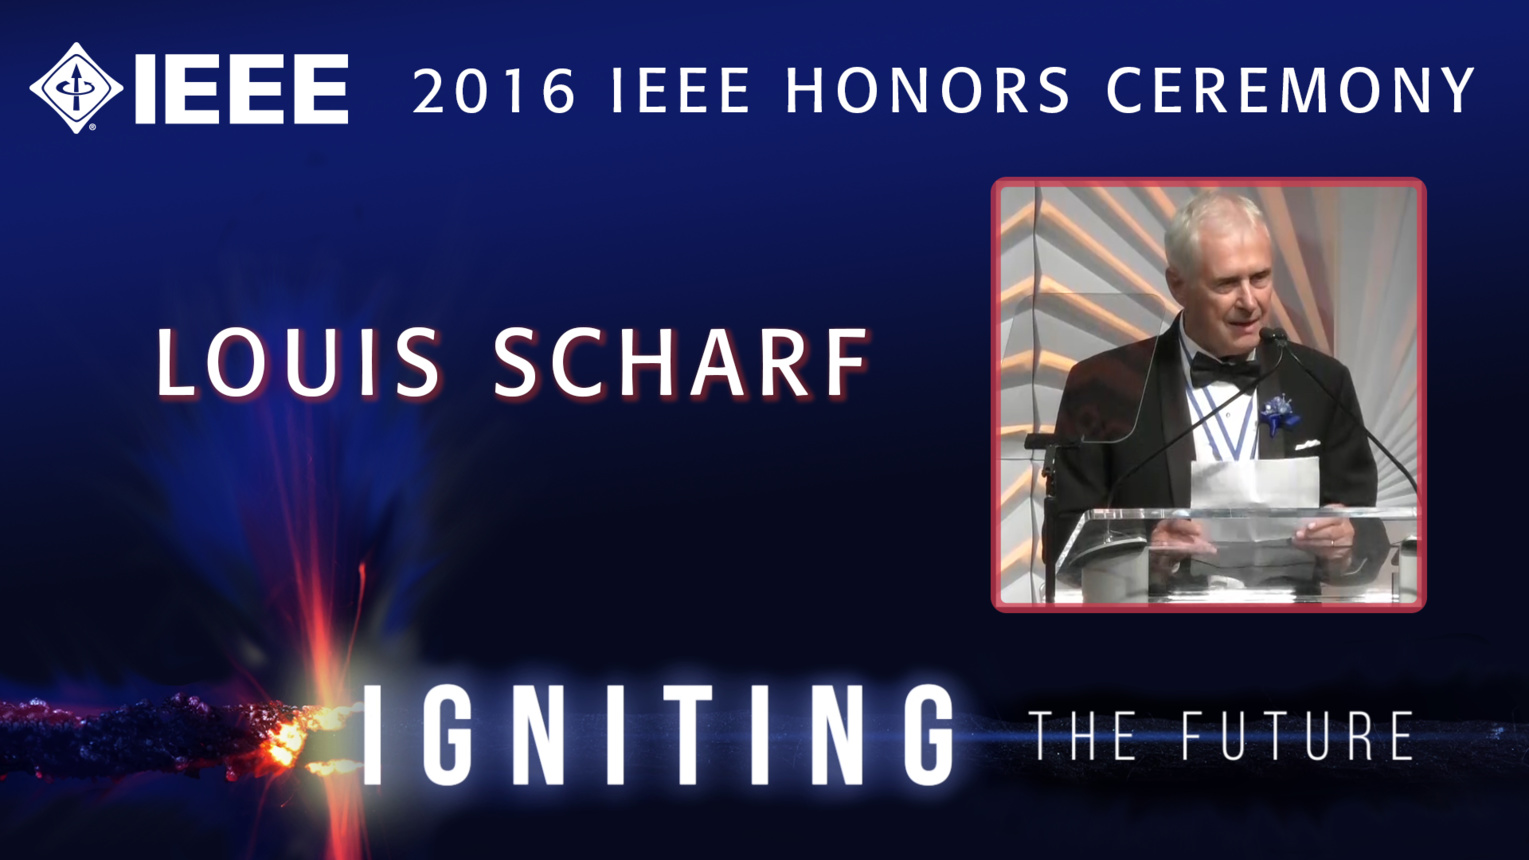 Louis Scharf receives the IEEE Jack S. Kilby Signal Processing Medal - Honors Ceremony 2016